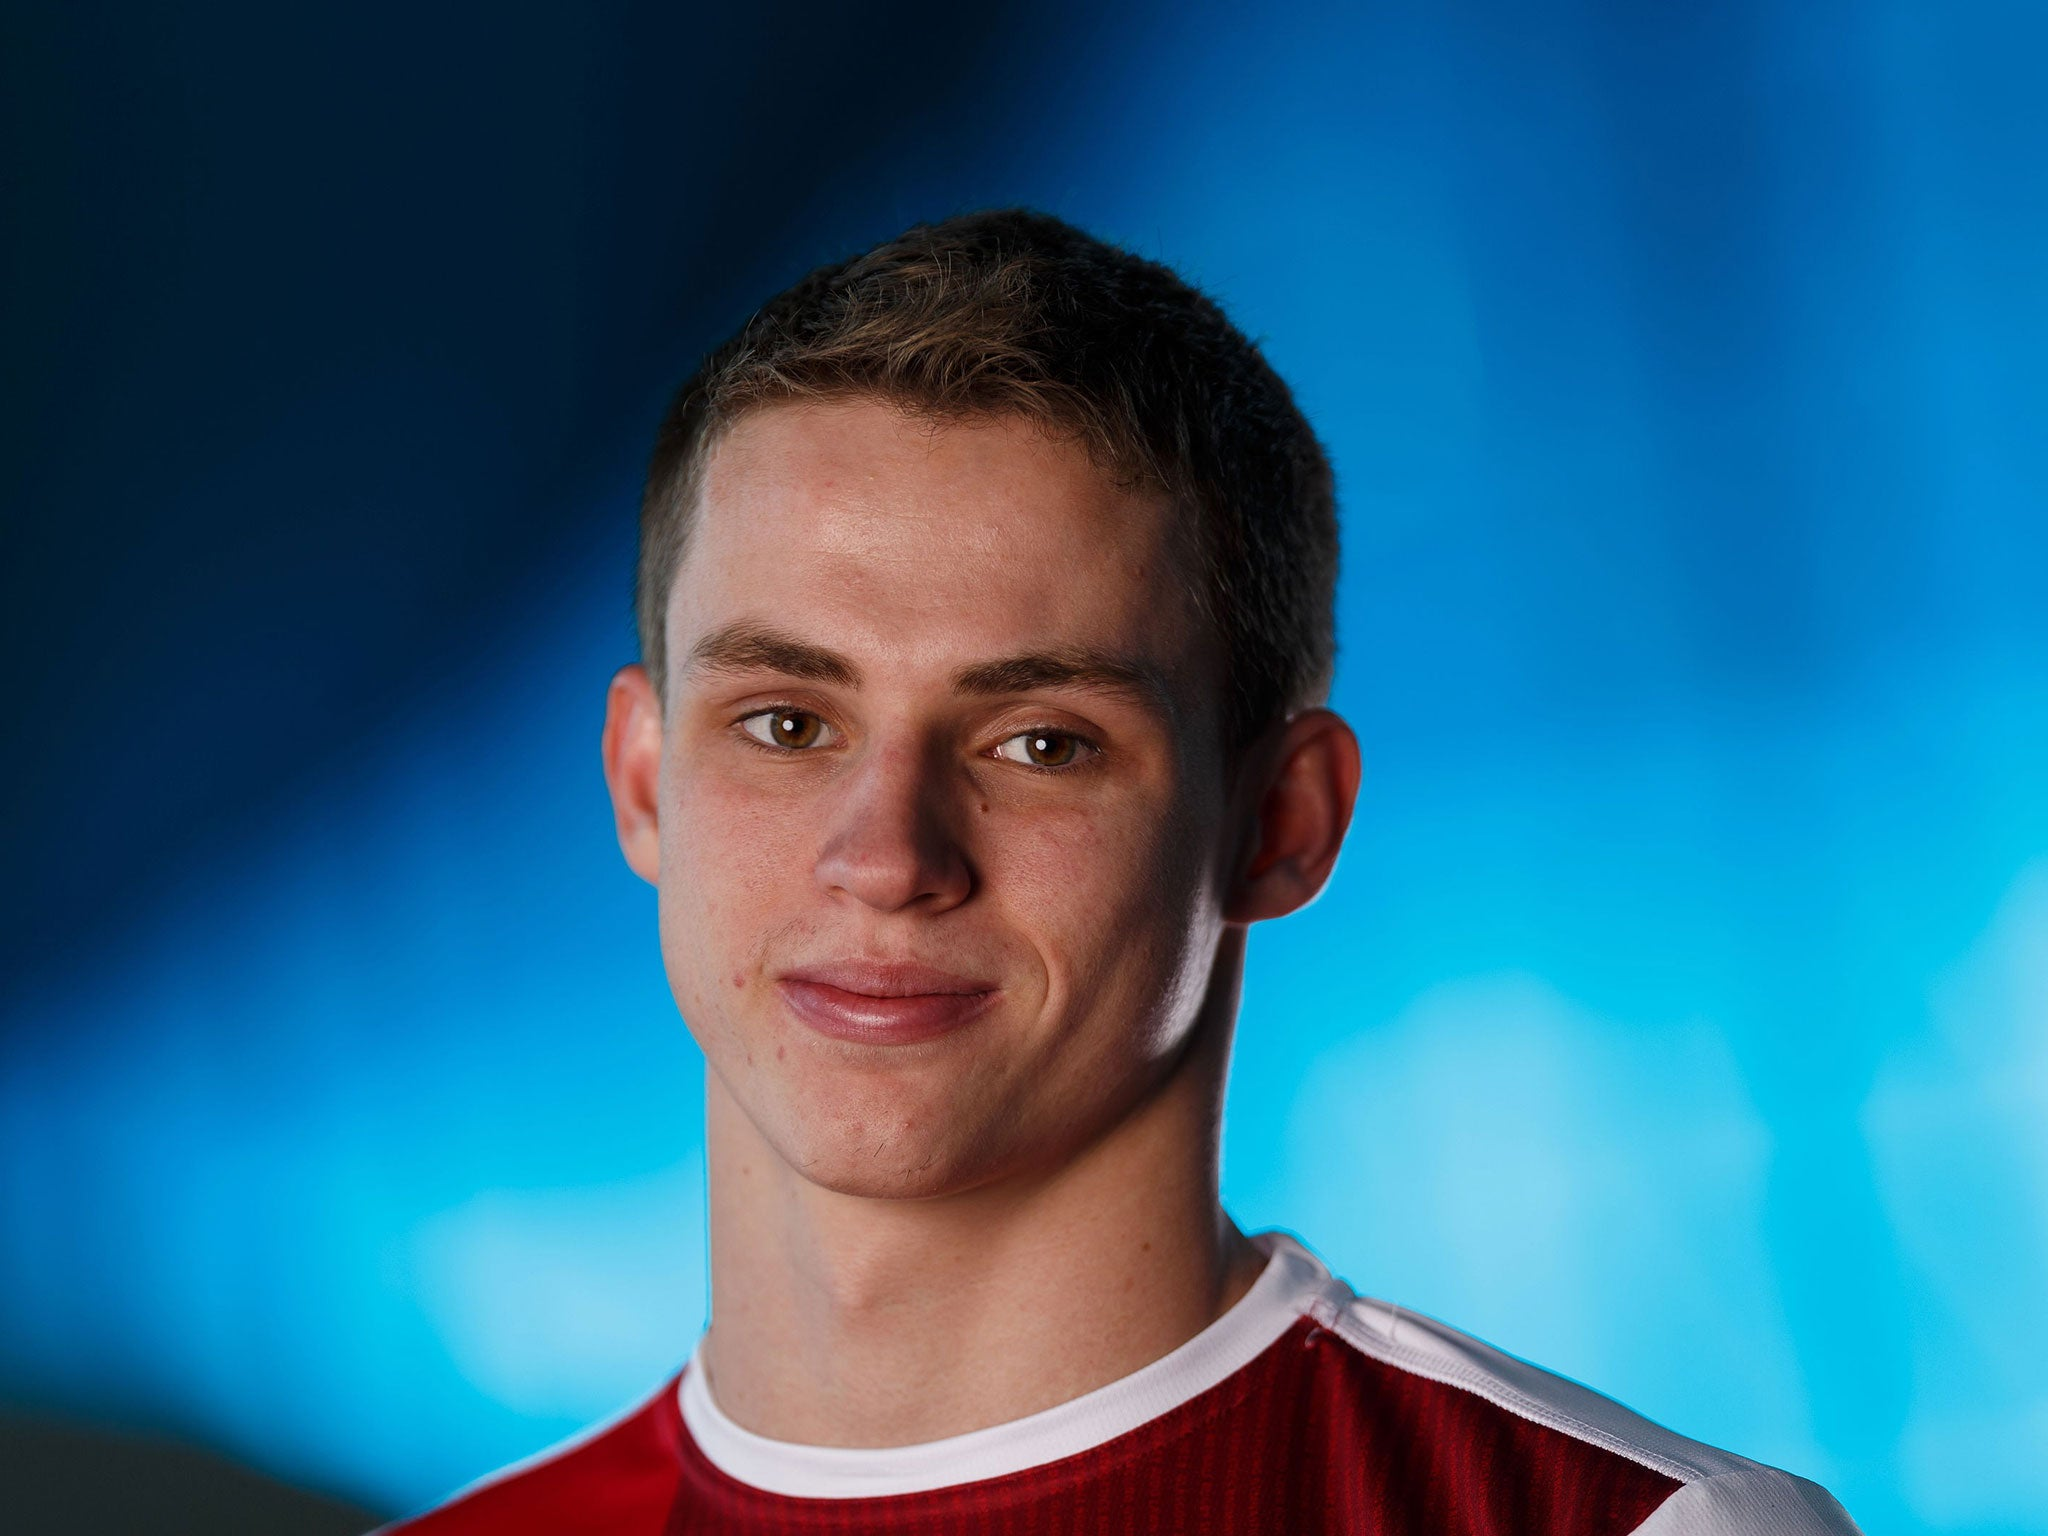 Commonwealth Games 2014 Ben Proud Lands Butterfly Gold The Independent